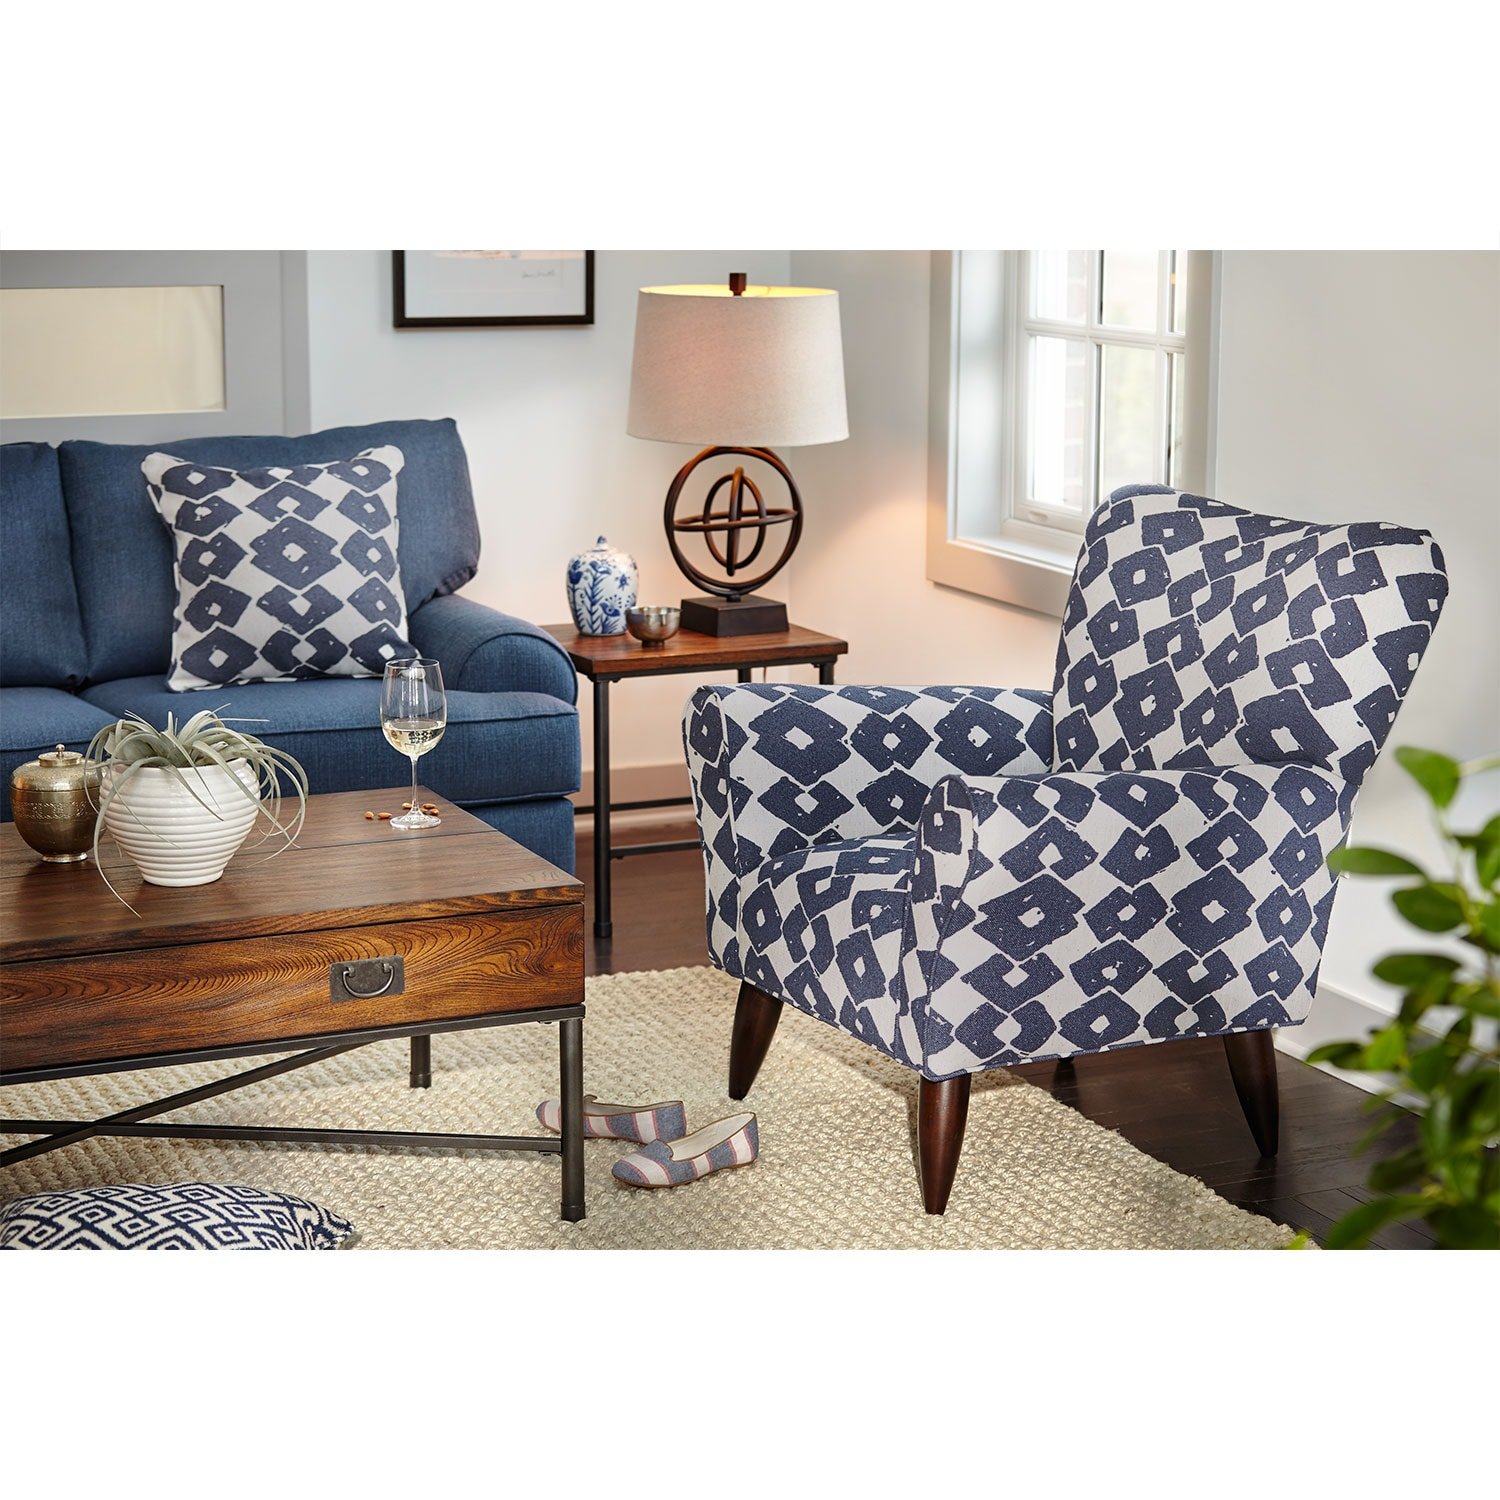 chairs for living rooms. Space Furniture Chairs. Jessie Accent Chair - Blue By Kroehler Chairs T For Living Rooms